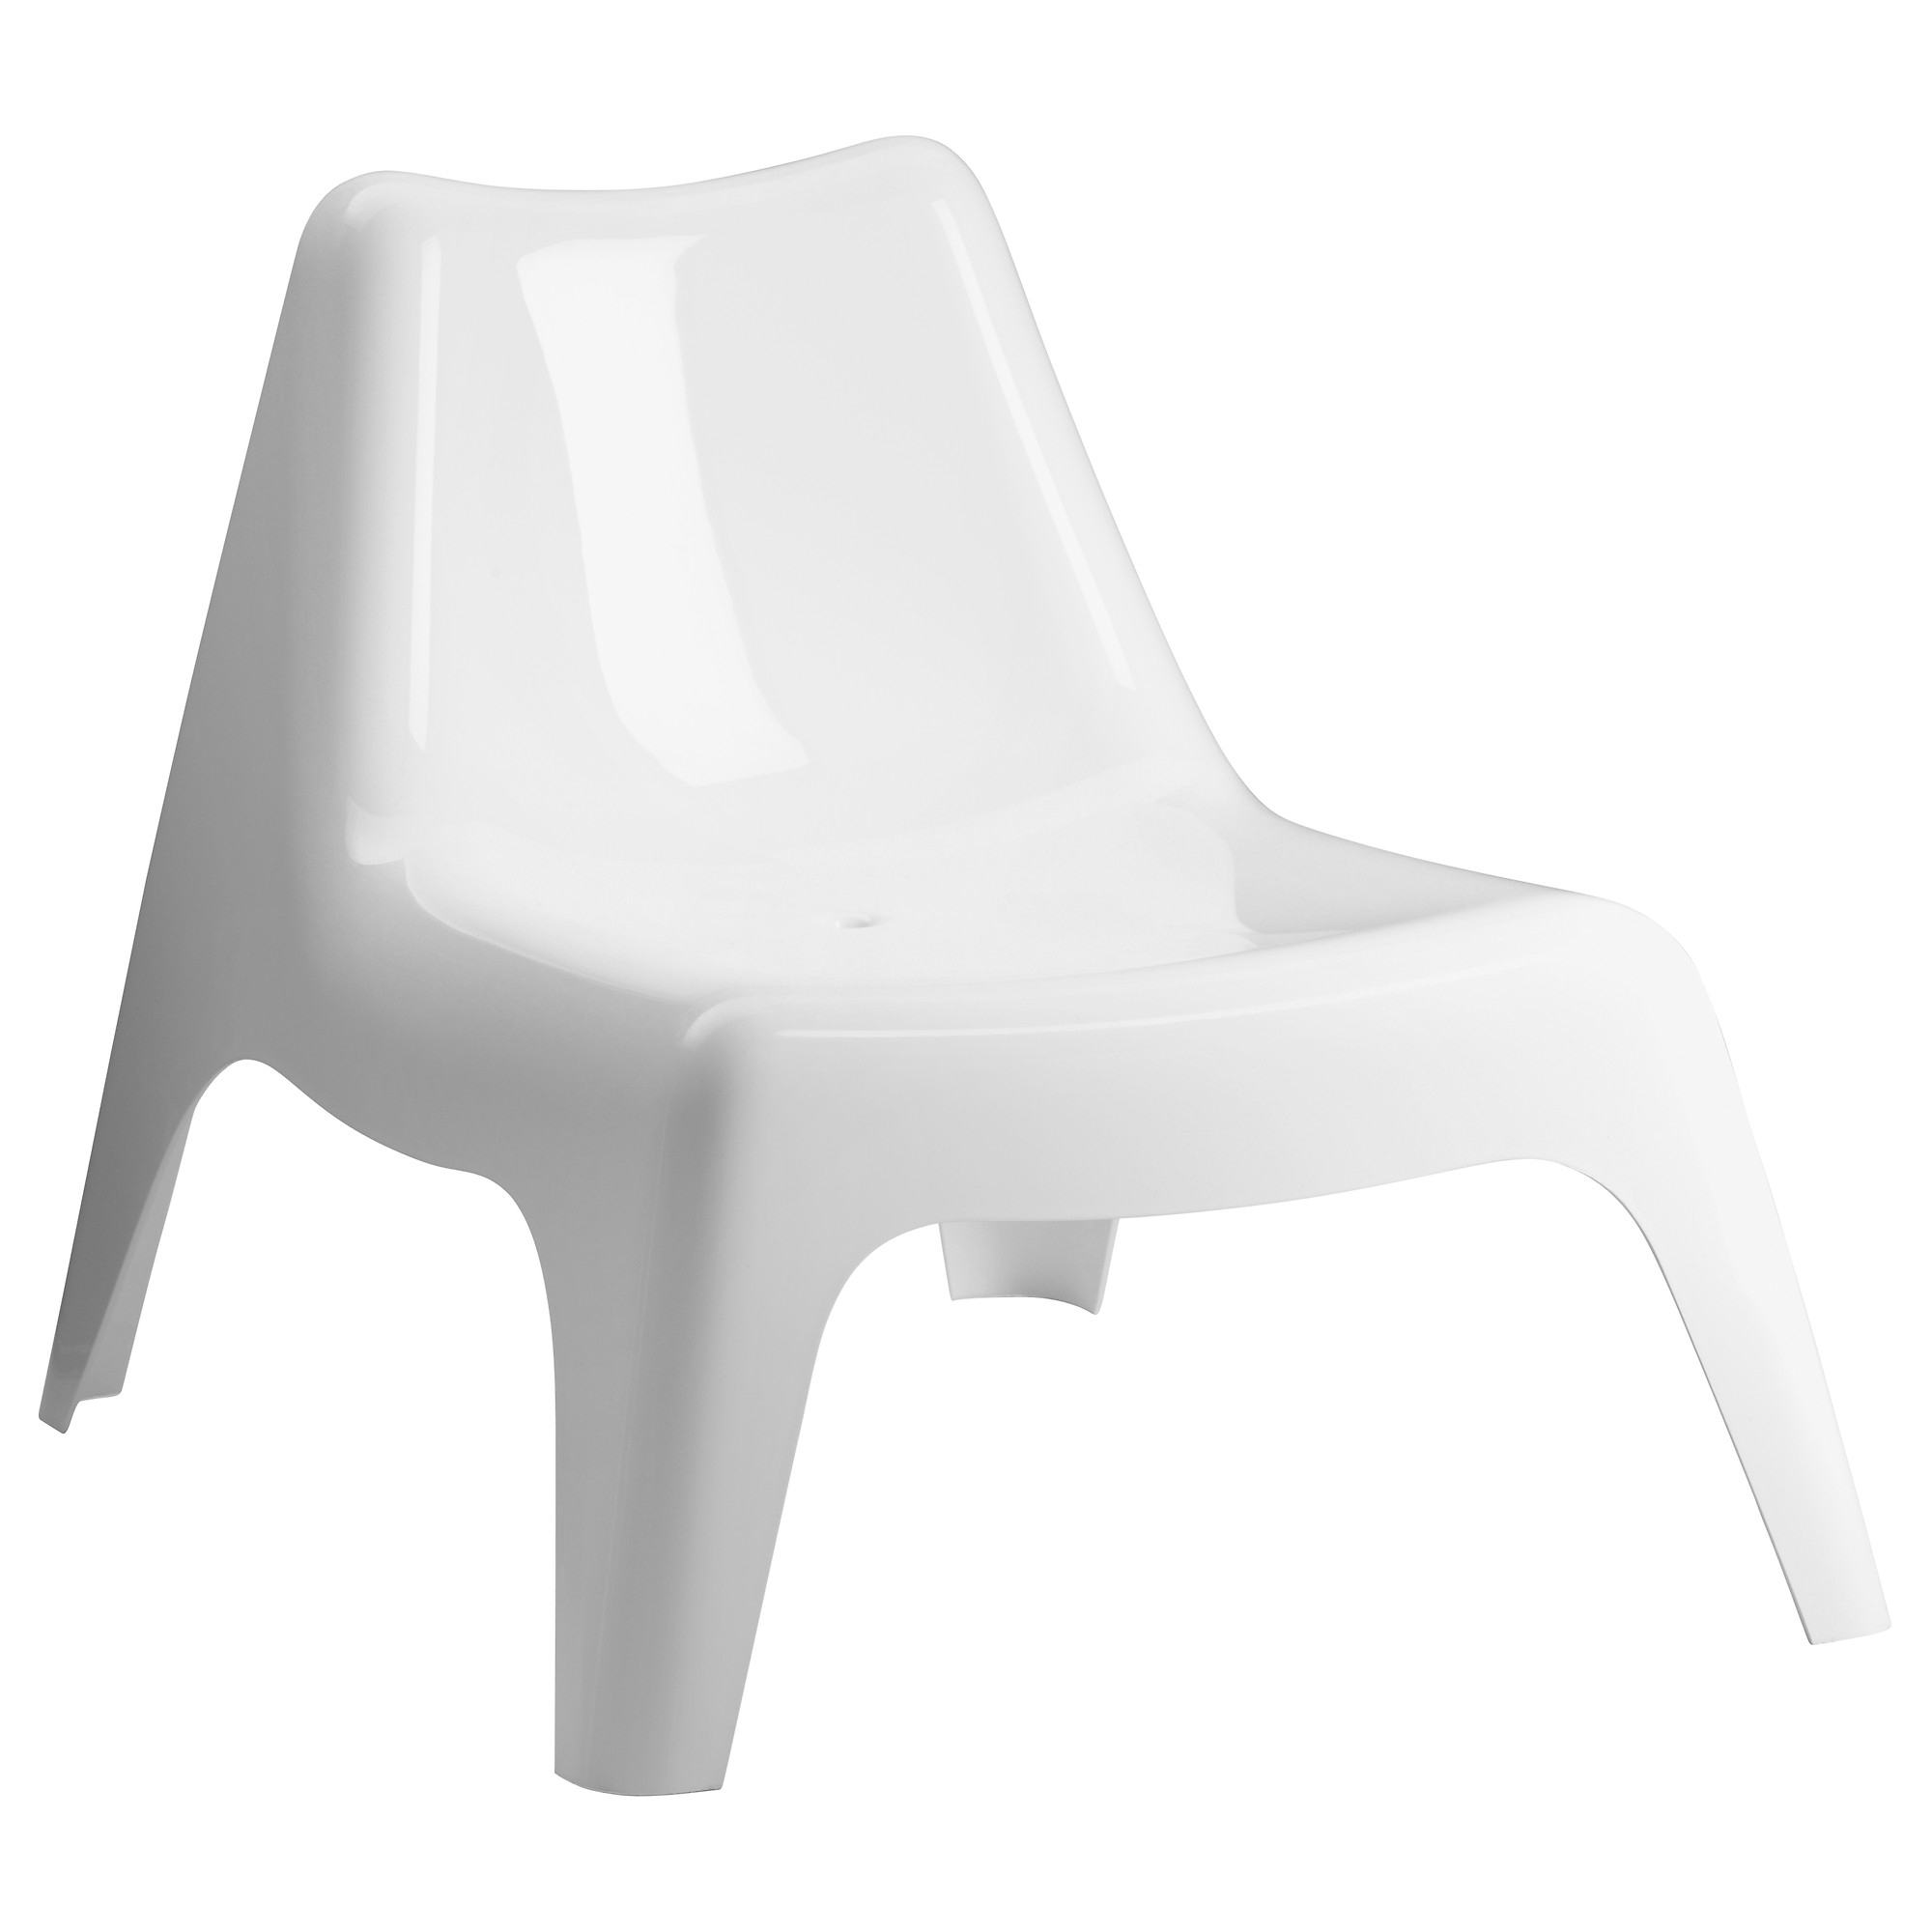 Ikea Lounge Chair Best 15 43 Of Ikea Outdoor Chaise Lounge Chairs